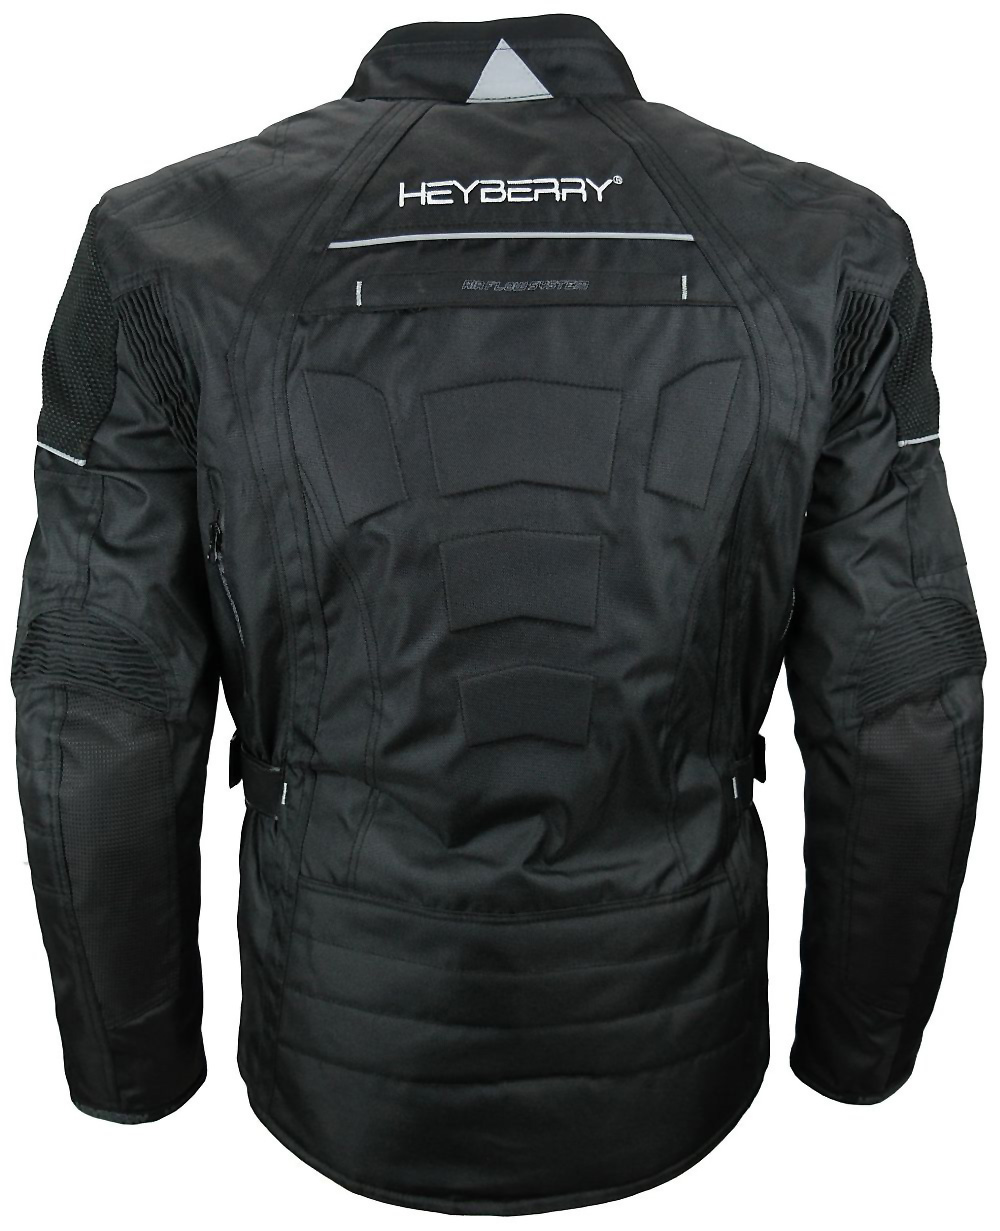 herren touren motorradjacke textil heyberry schwarz gr m. Black Bedroom Furniture Sets. Home Design Ideas